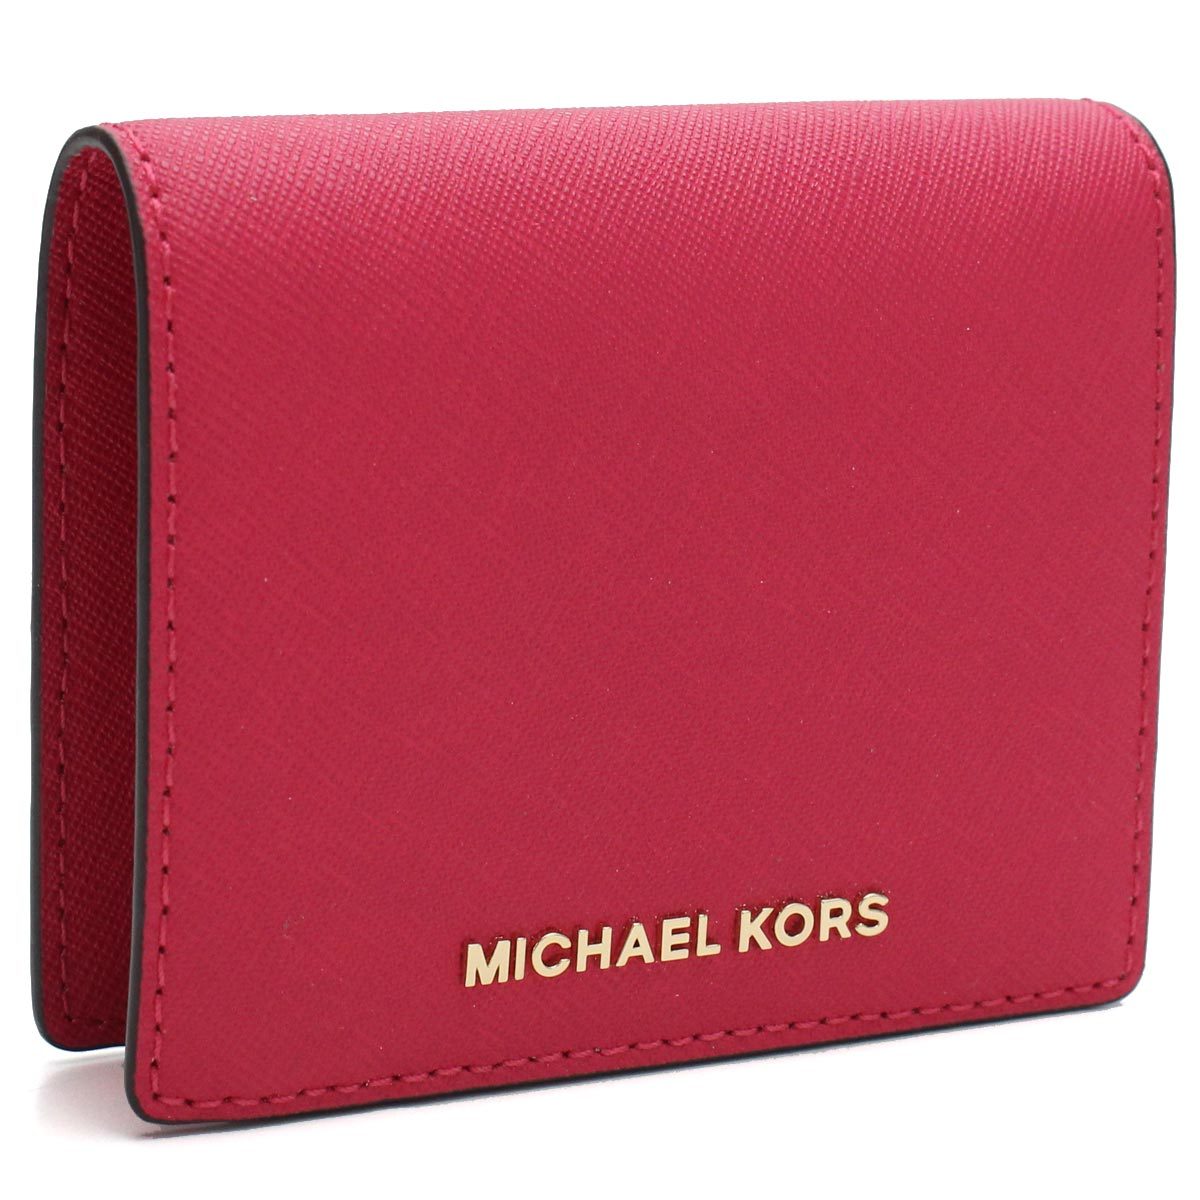 detailed look 3f2ea e786d Michael Kors MICHAEL KORS MONEY PIECES card case 32T4GTVF2L ULTRA PINK pink  system